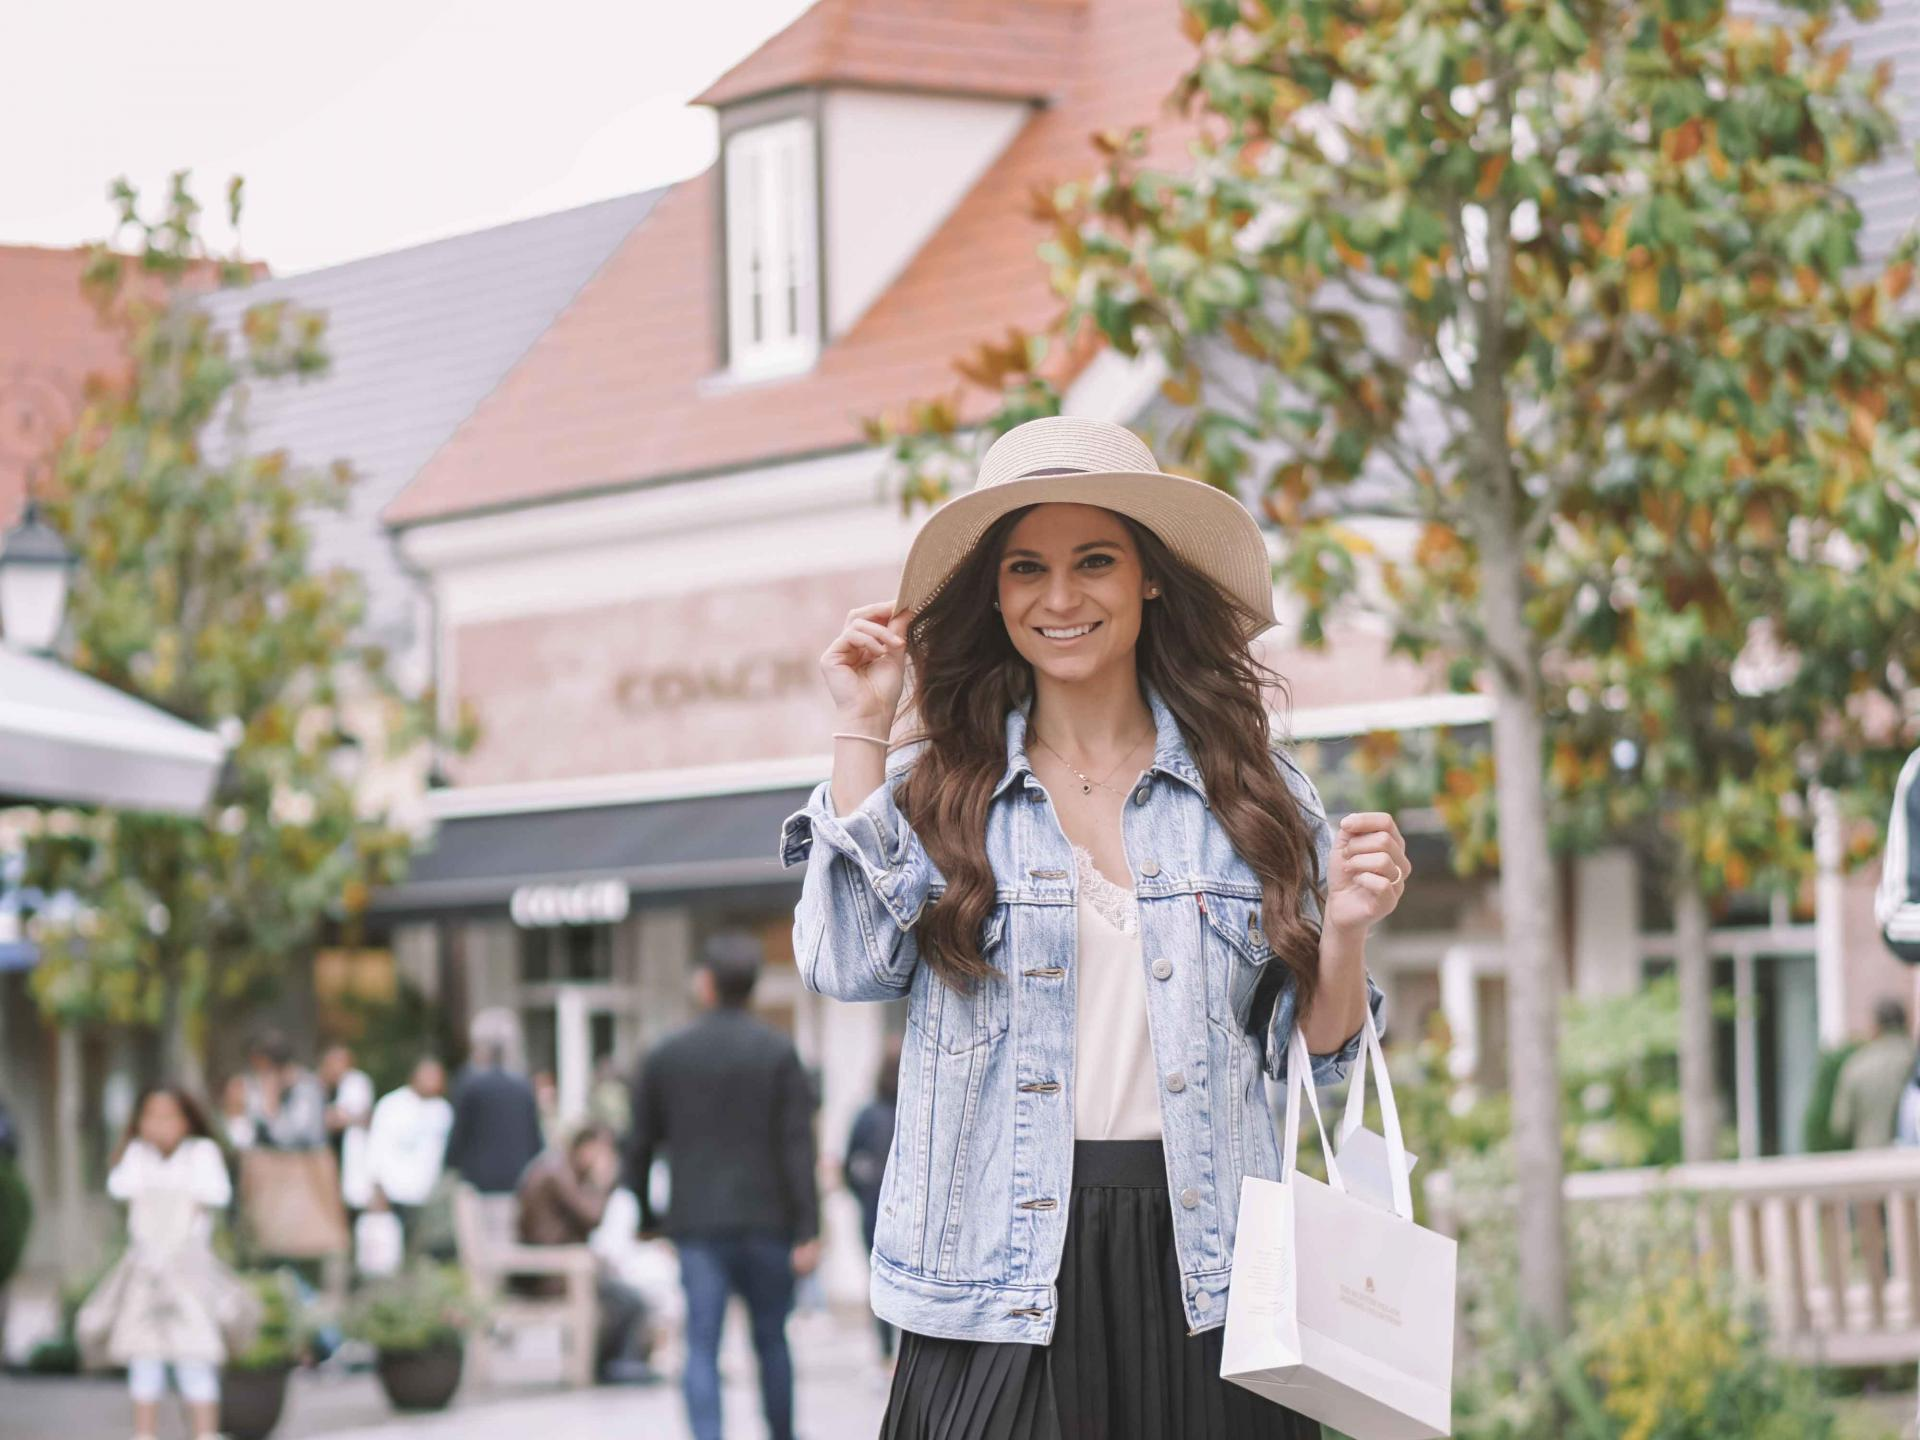 is la vallee village outlets worth visiting